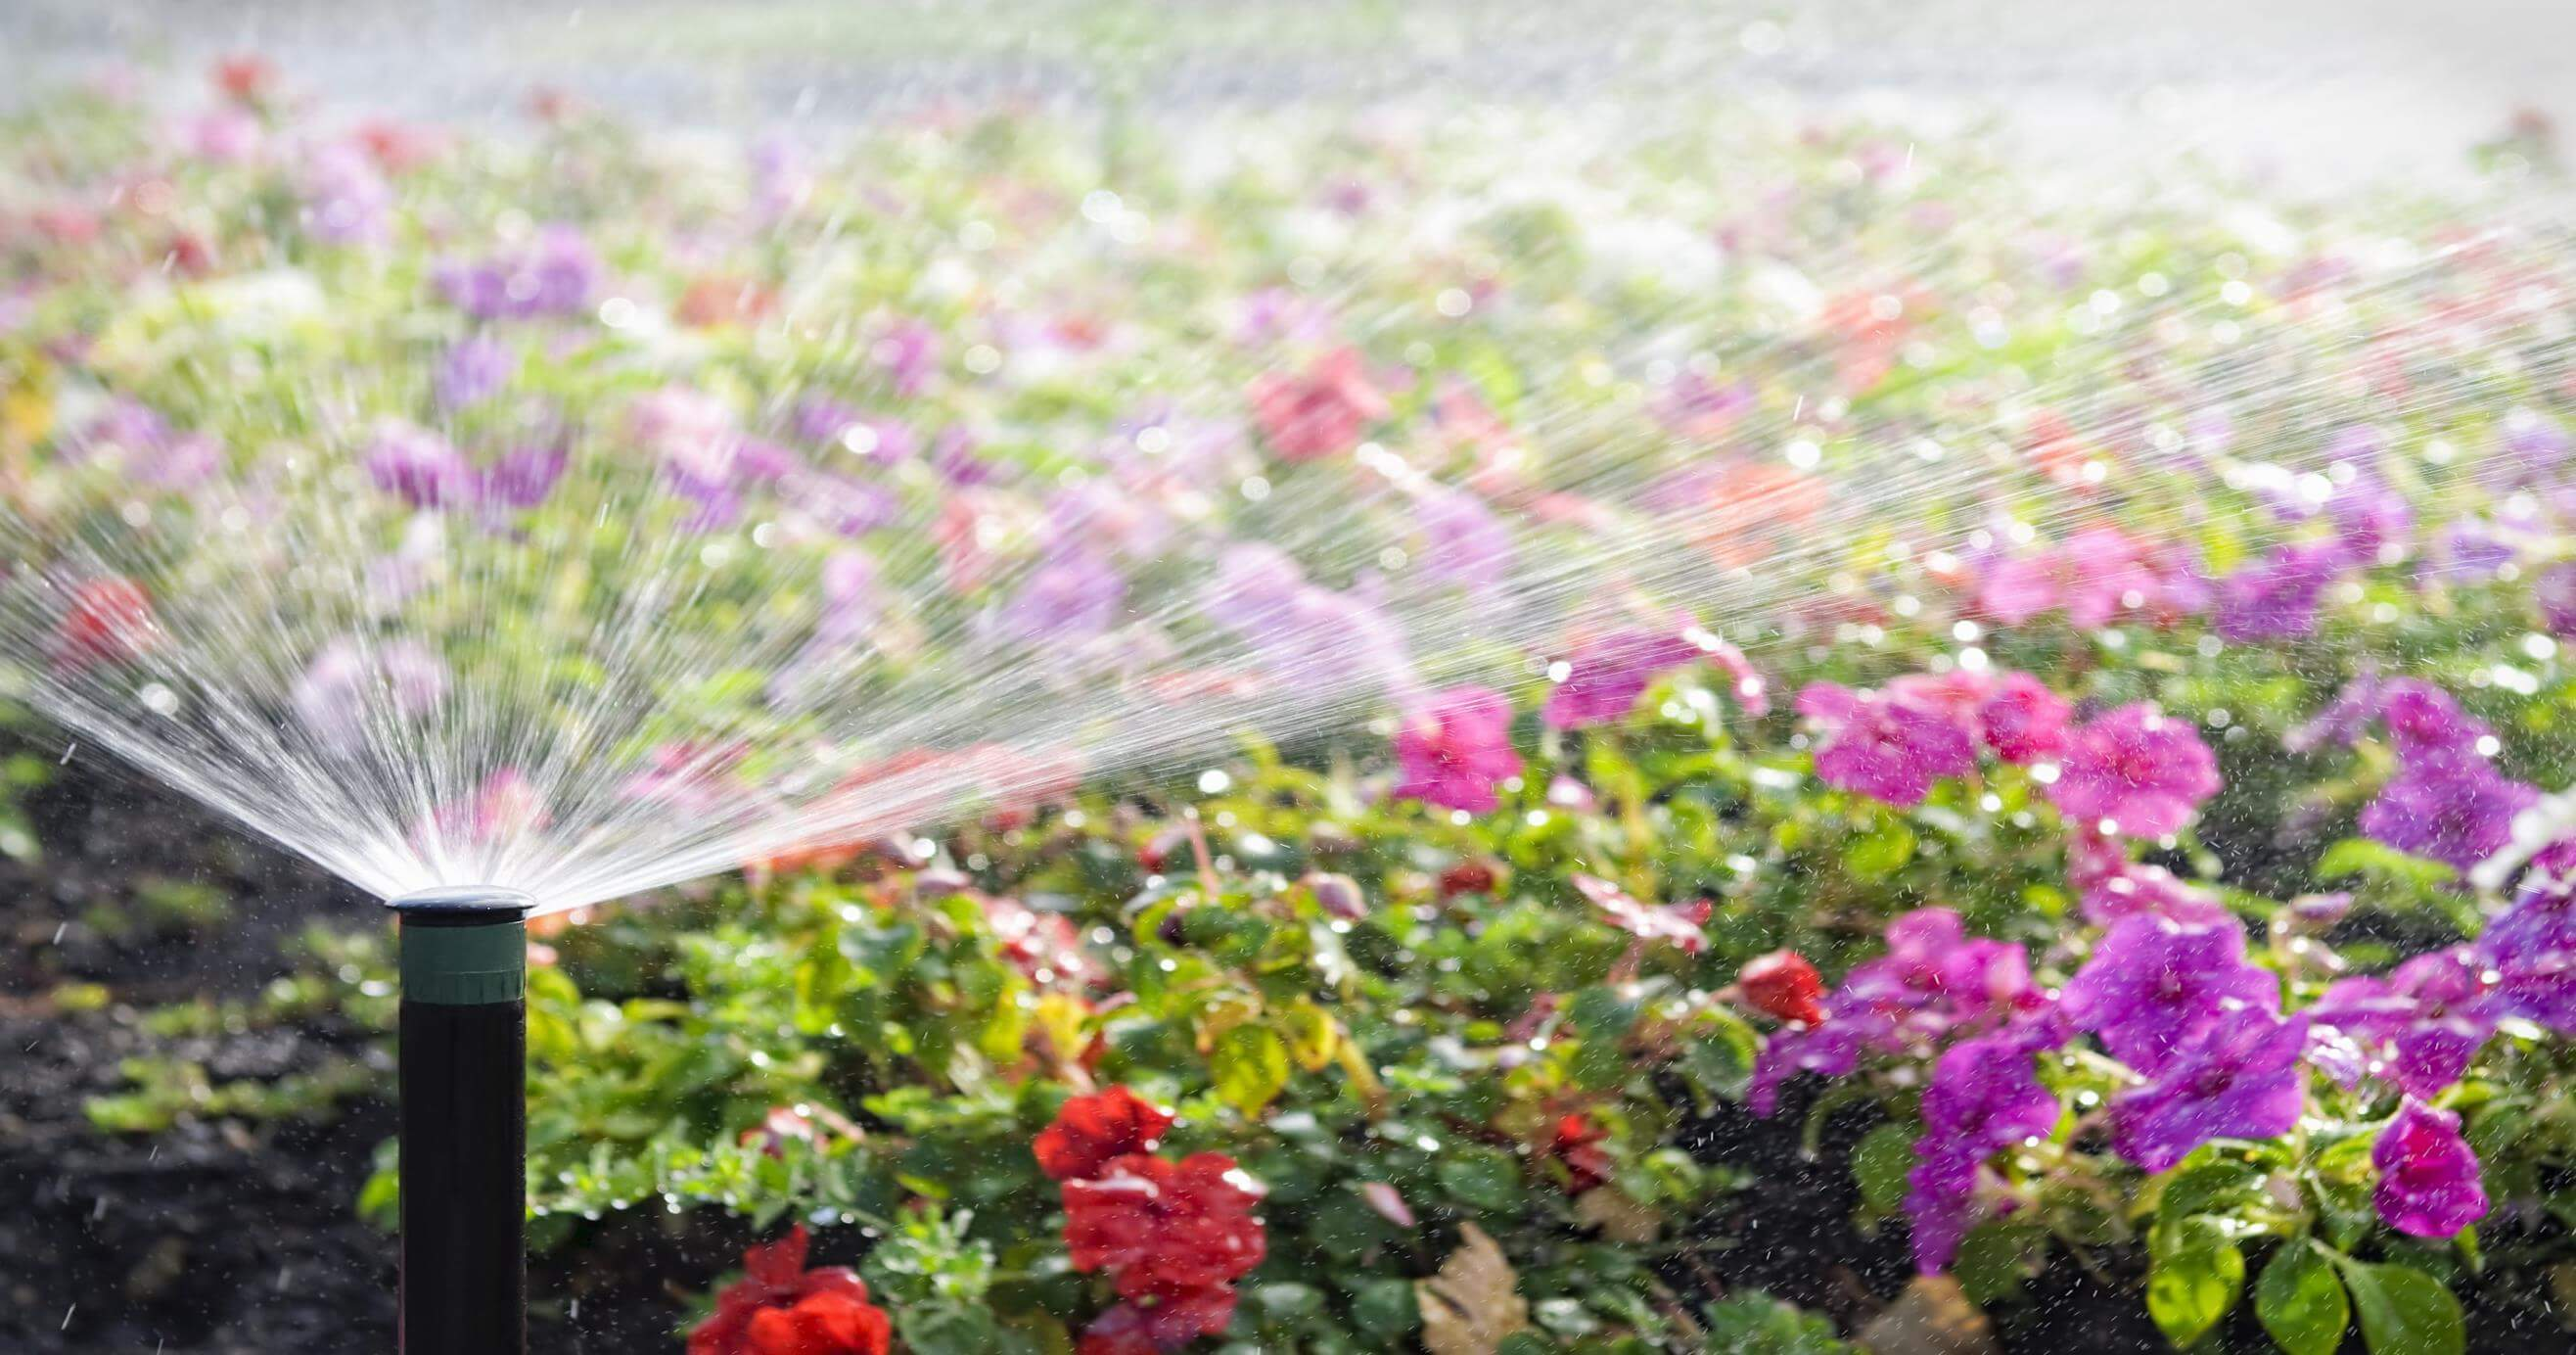 How to Install Sprinklers